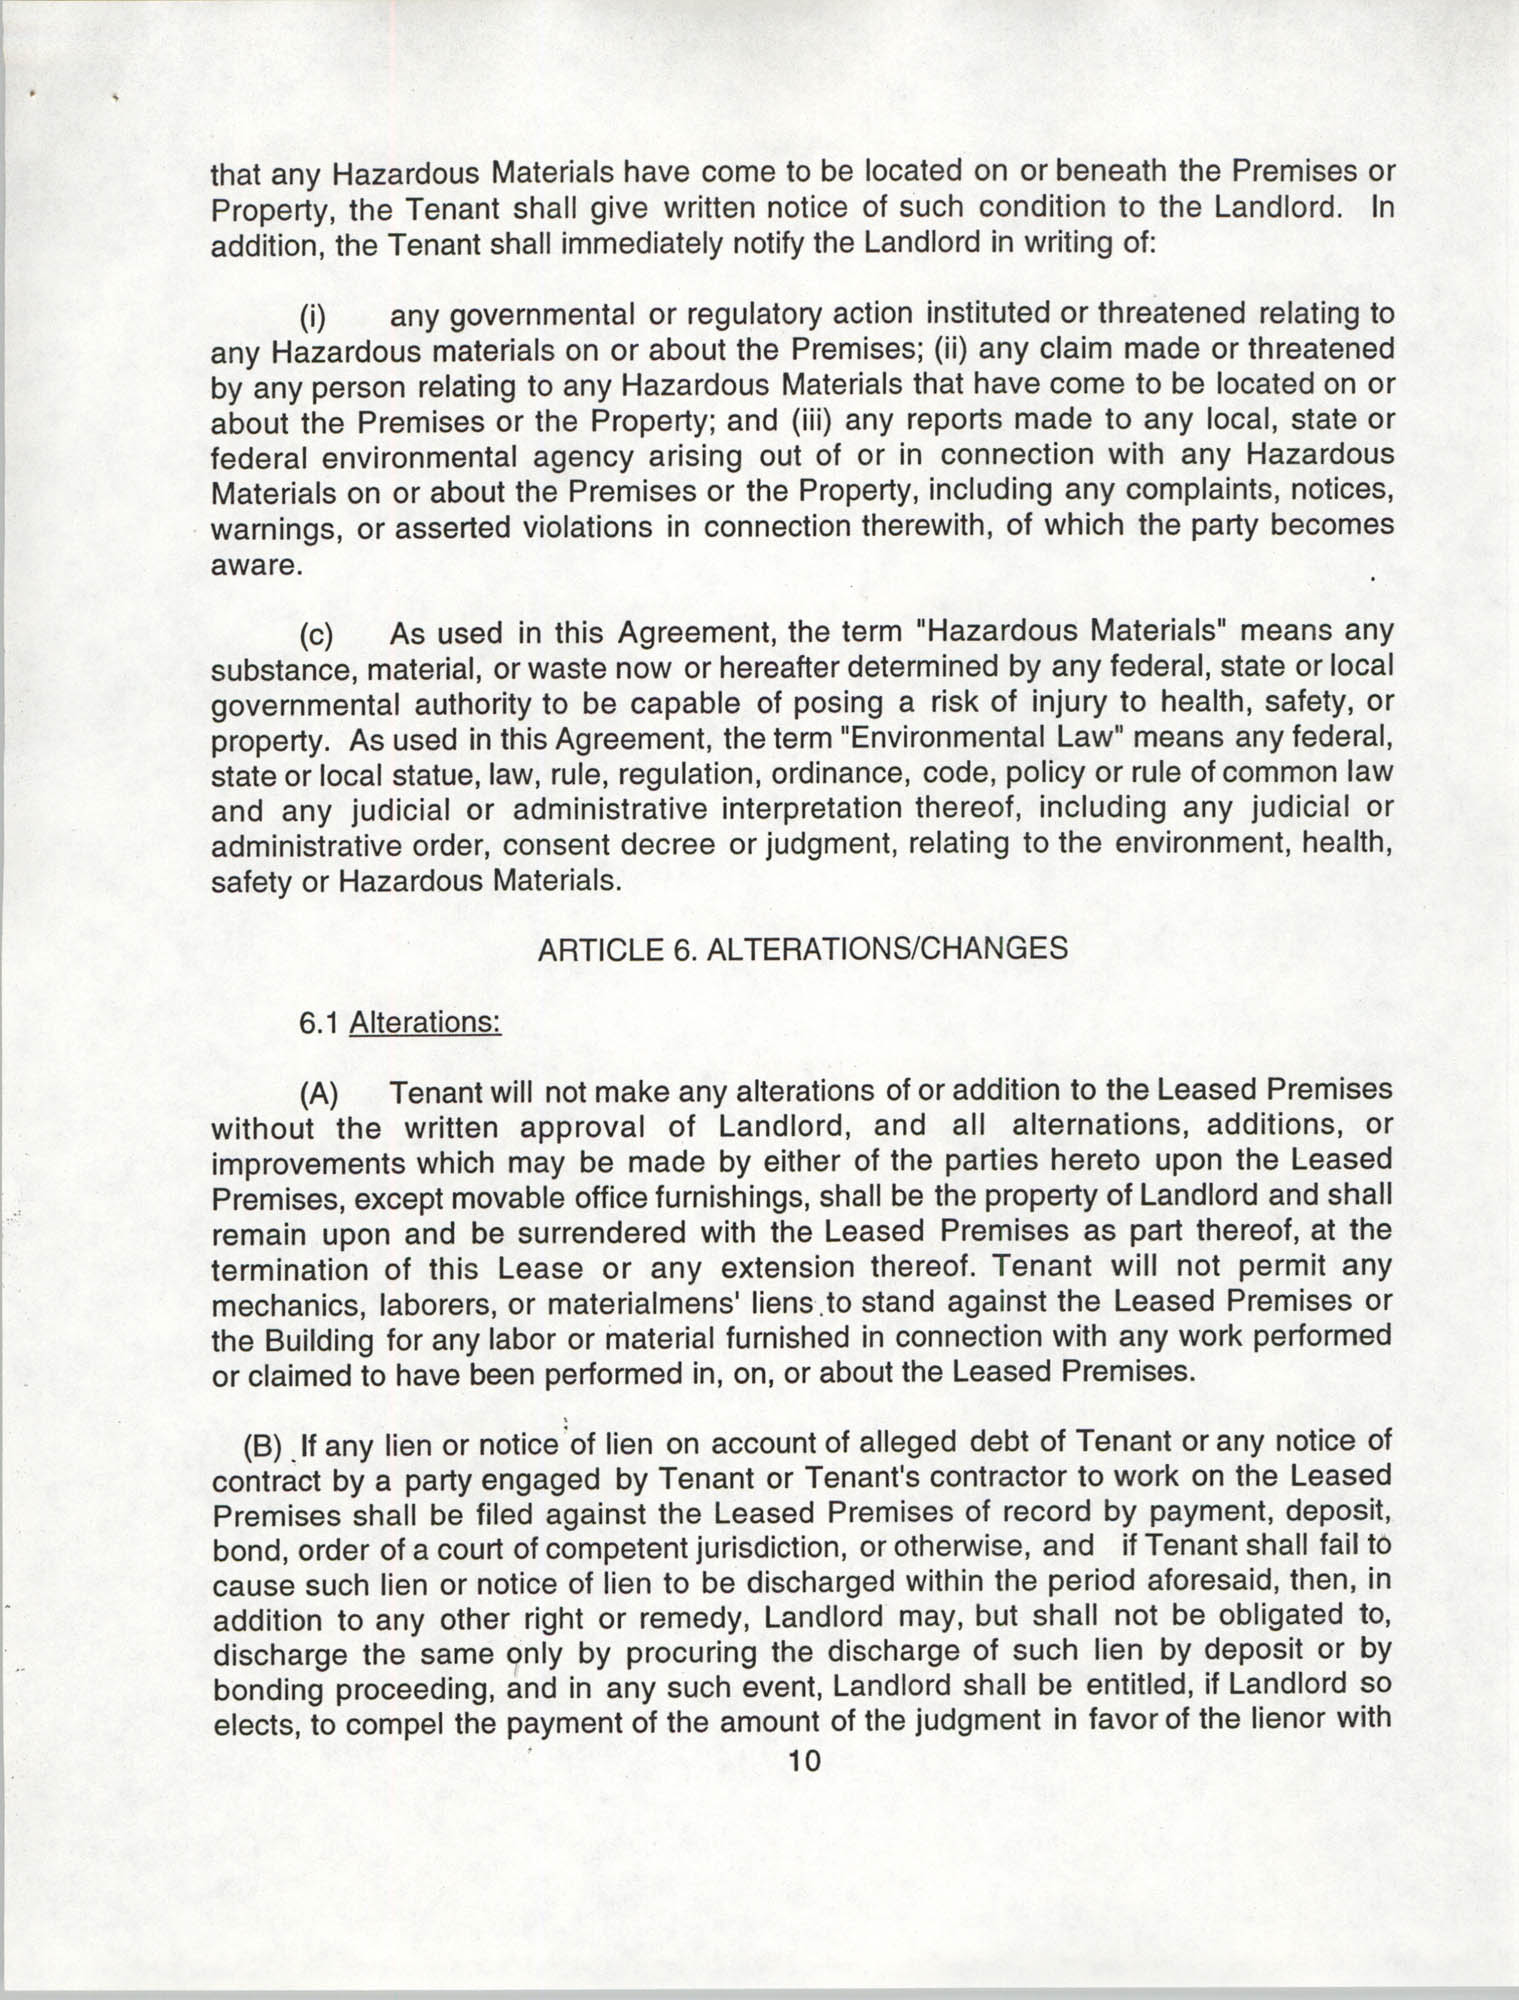 Charleston Branch of the NAACP Leasing Agreement, July 1994 to June 1995, Page 10